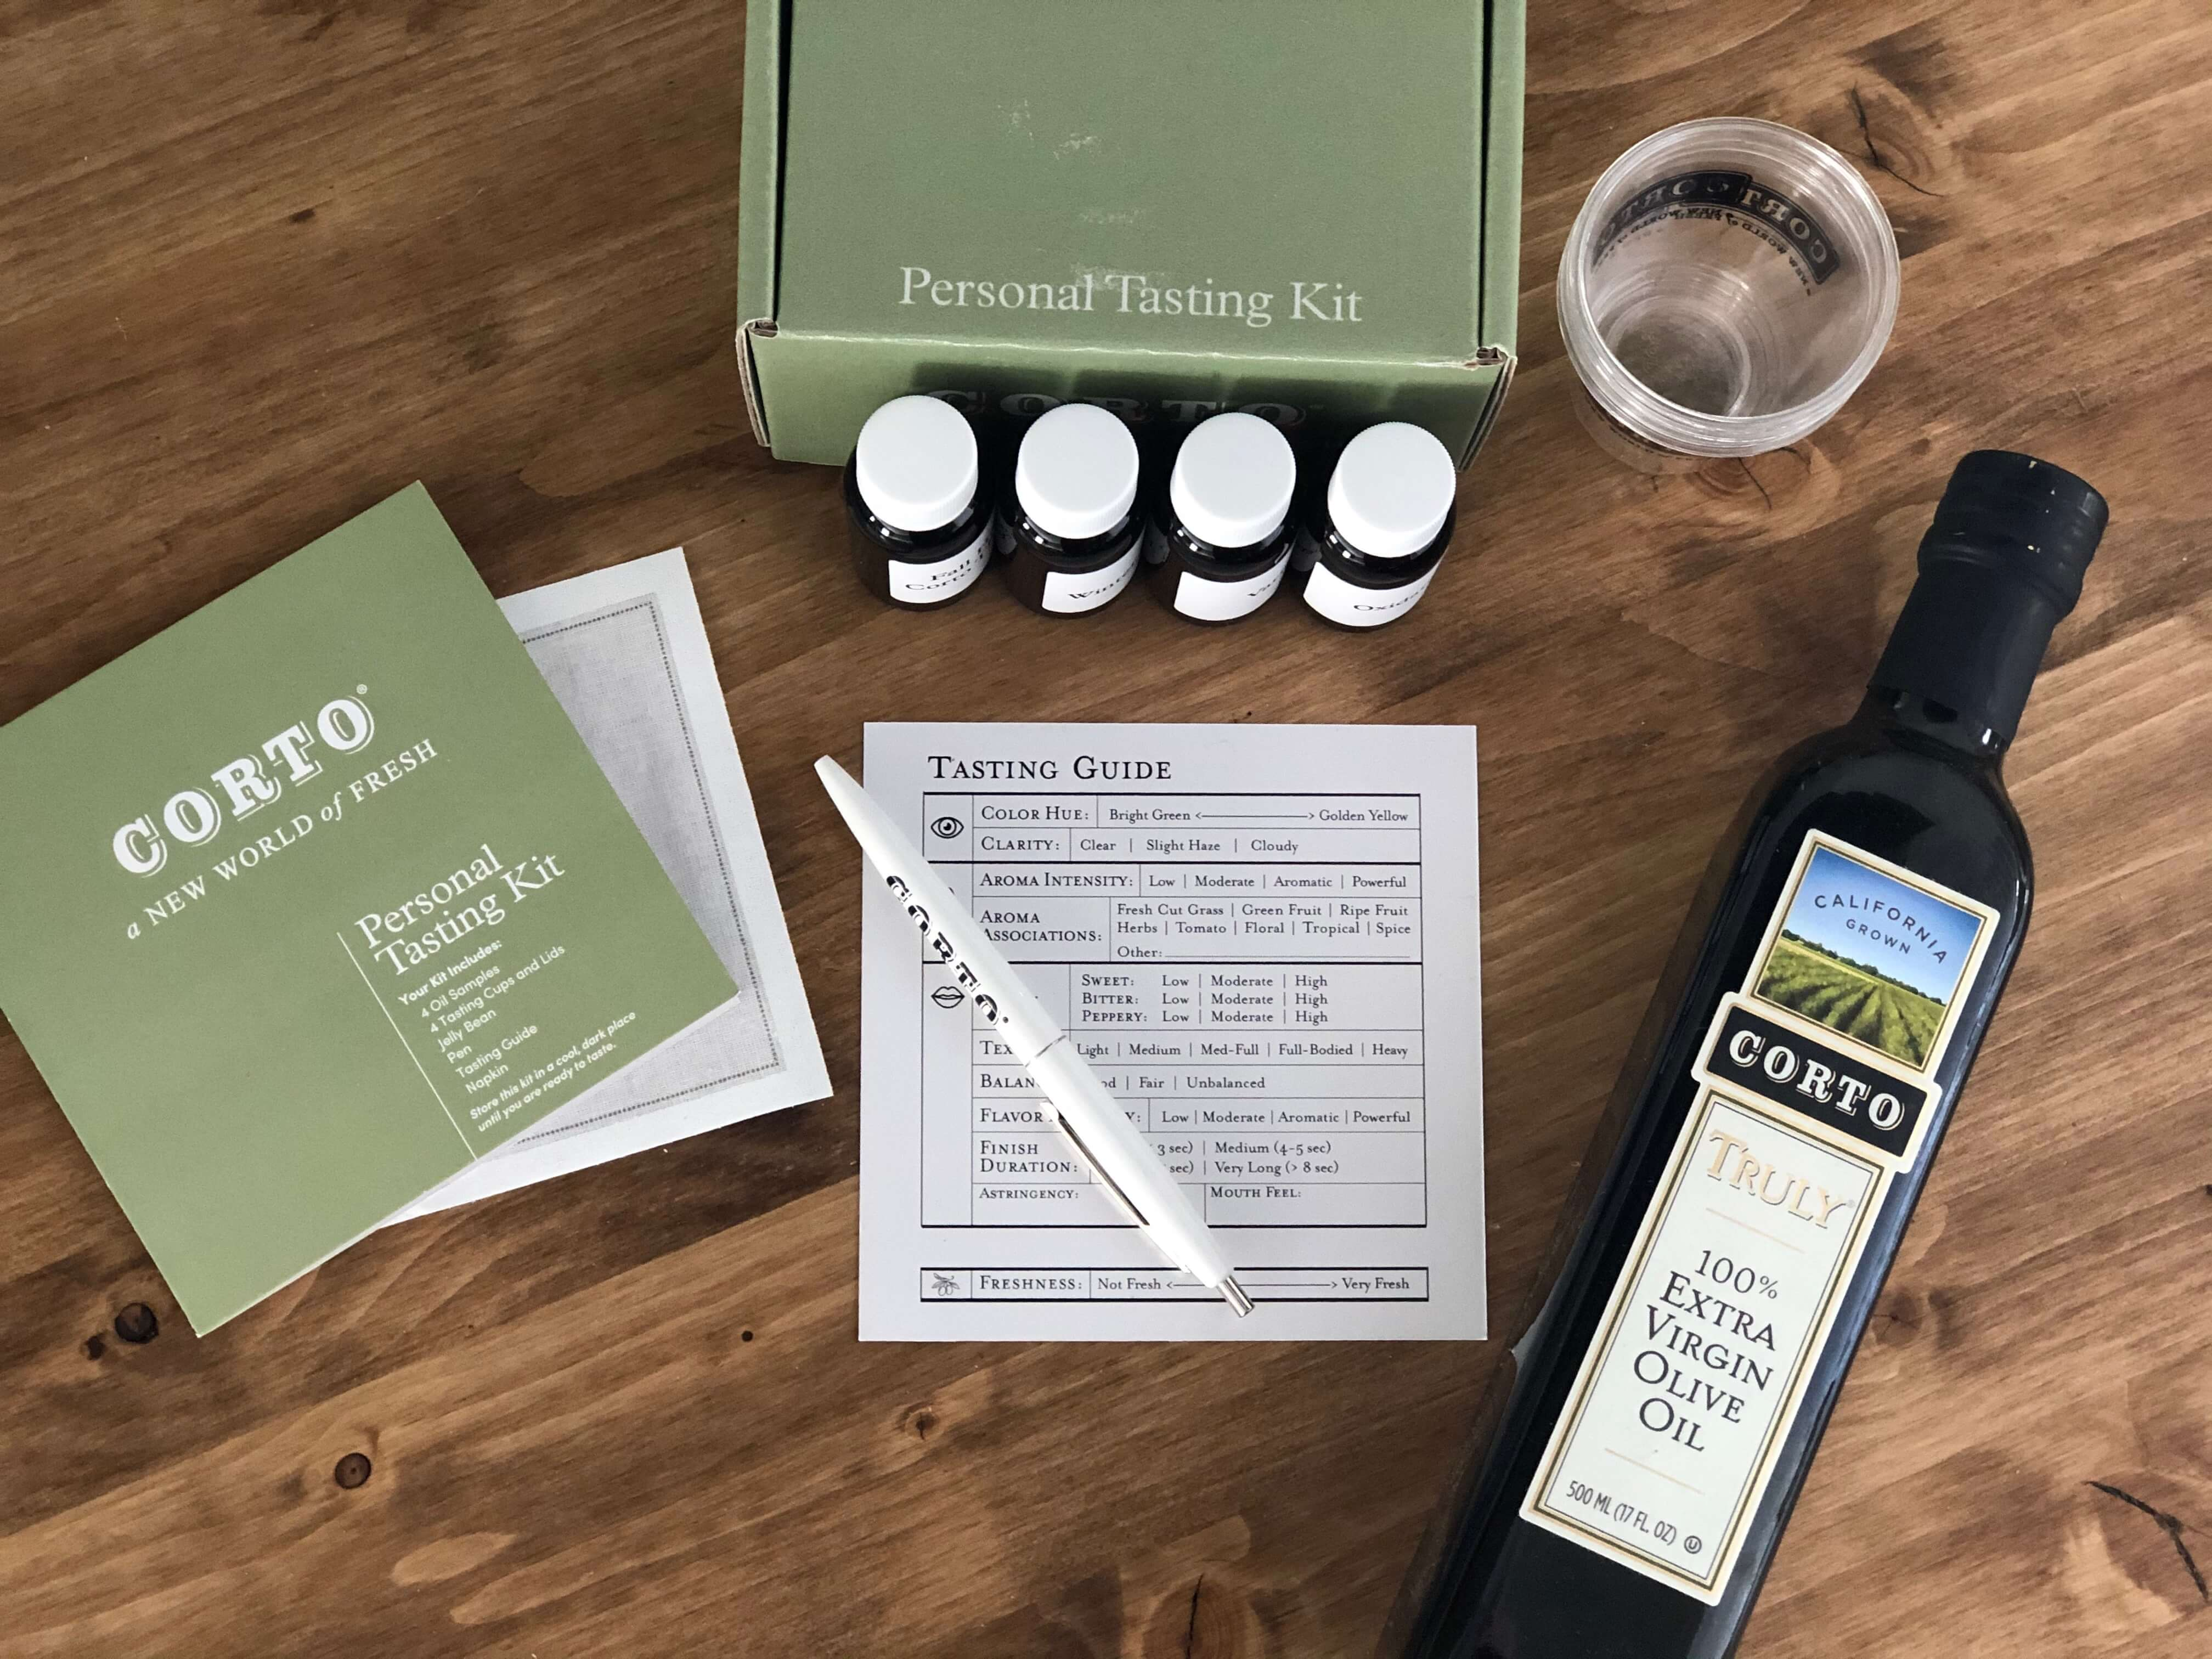 Corto Tasting Kit and Truly Bottle